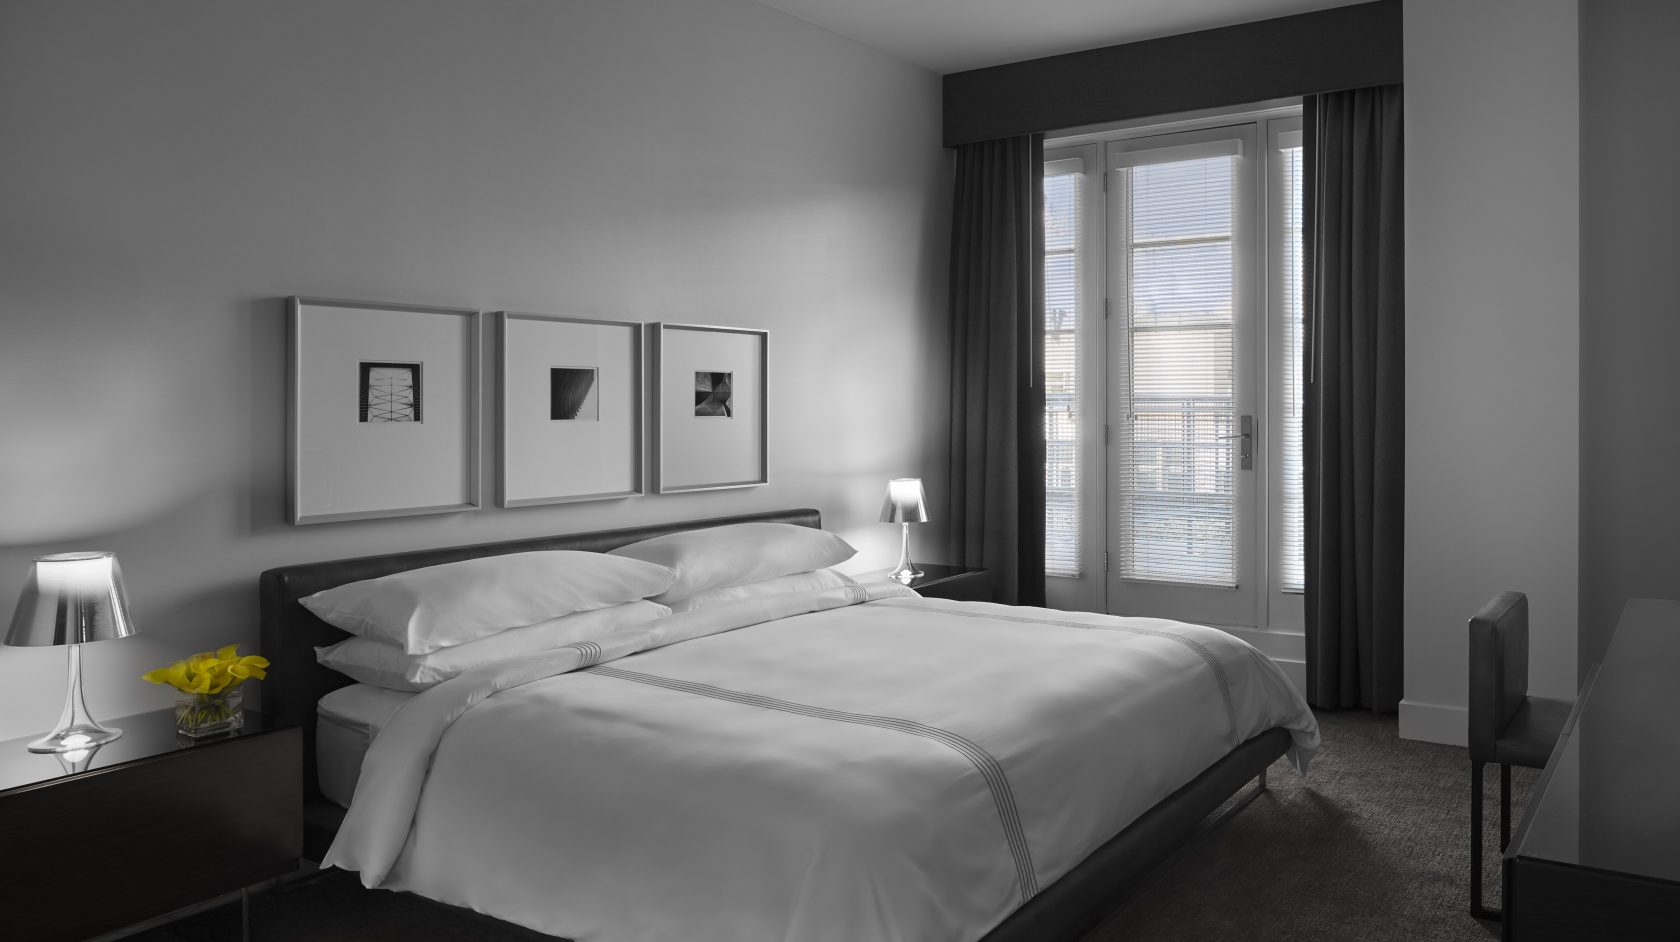 Washington DC Accommodations AKA - 2 bedroom suites in dc